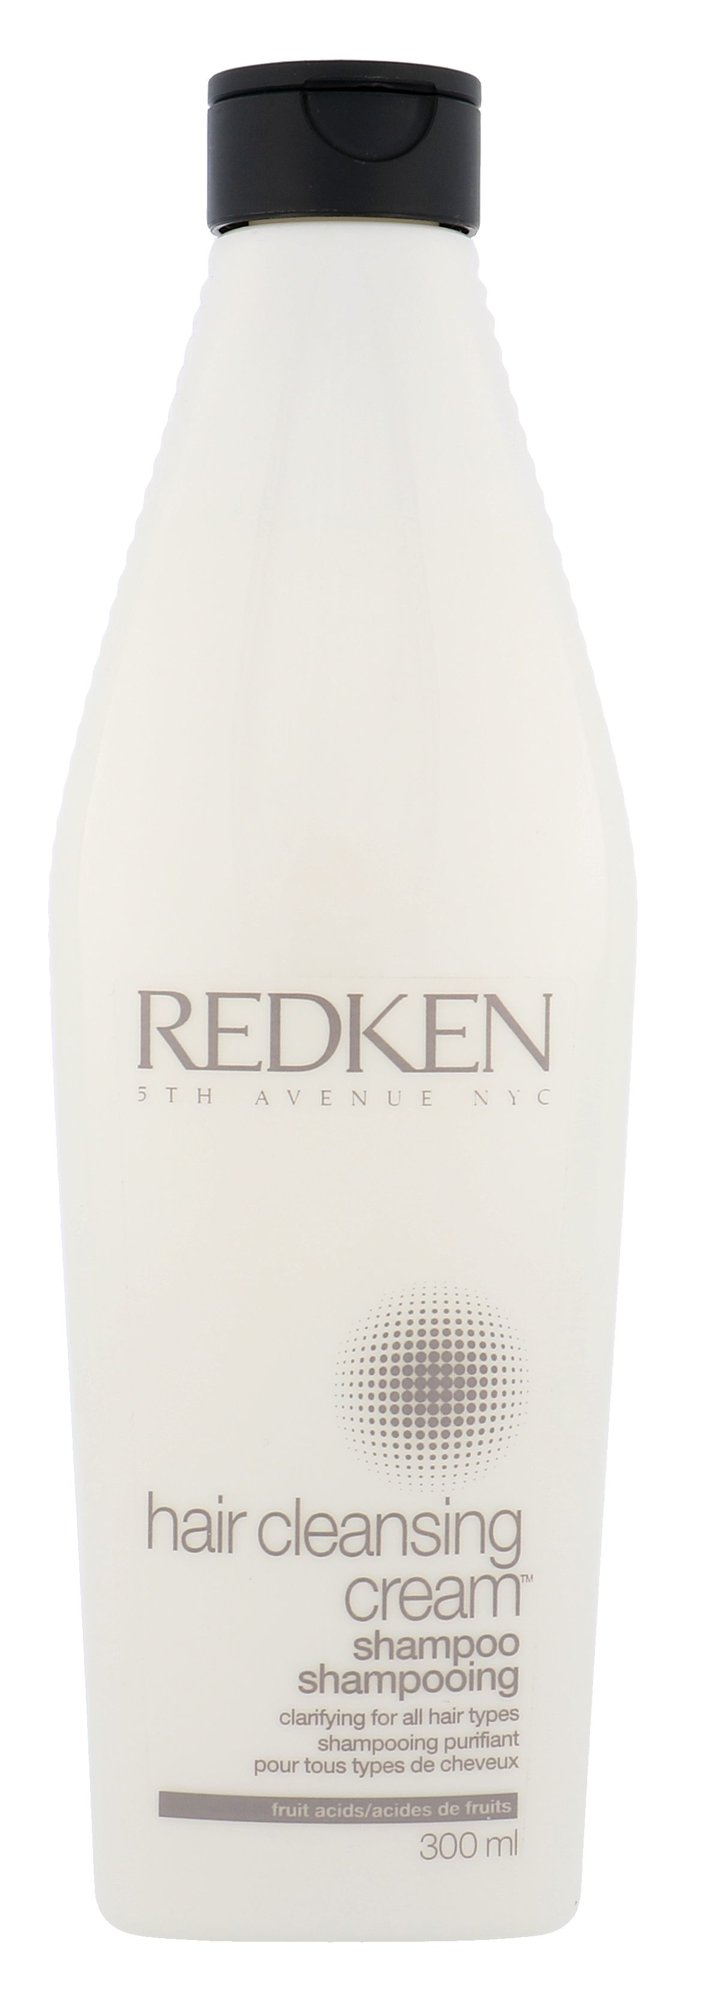 Redken Hair Cleansing Cream Shampoo Cosmetic 300ml